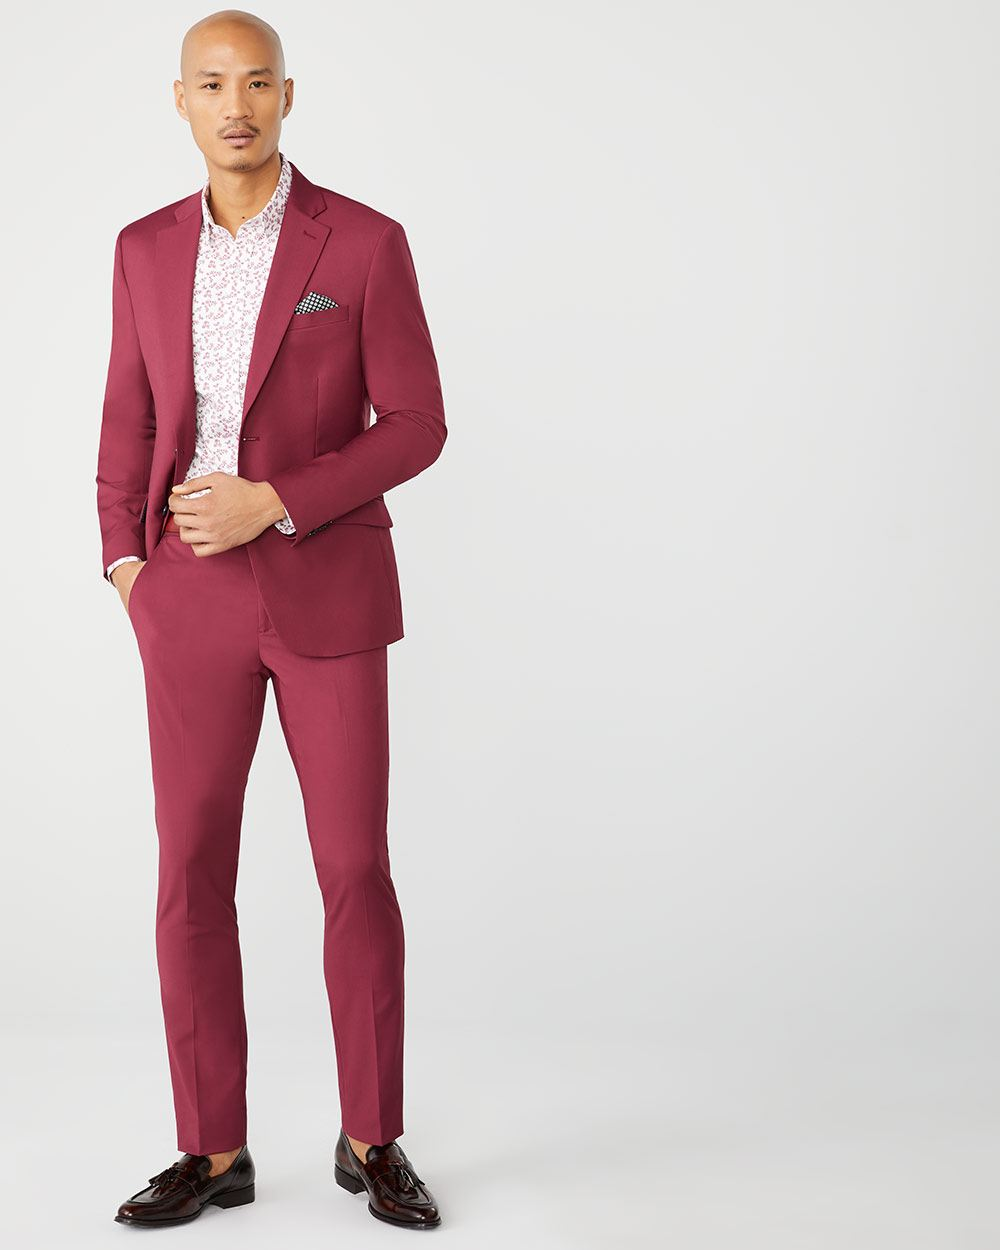 Slim Fit berry red suit blazer